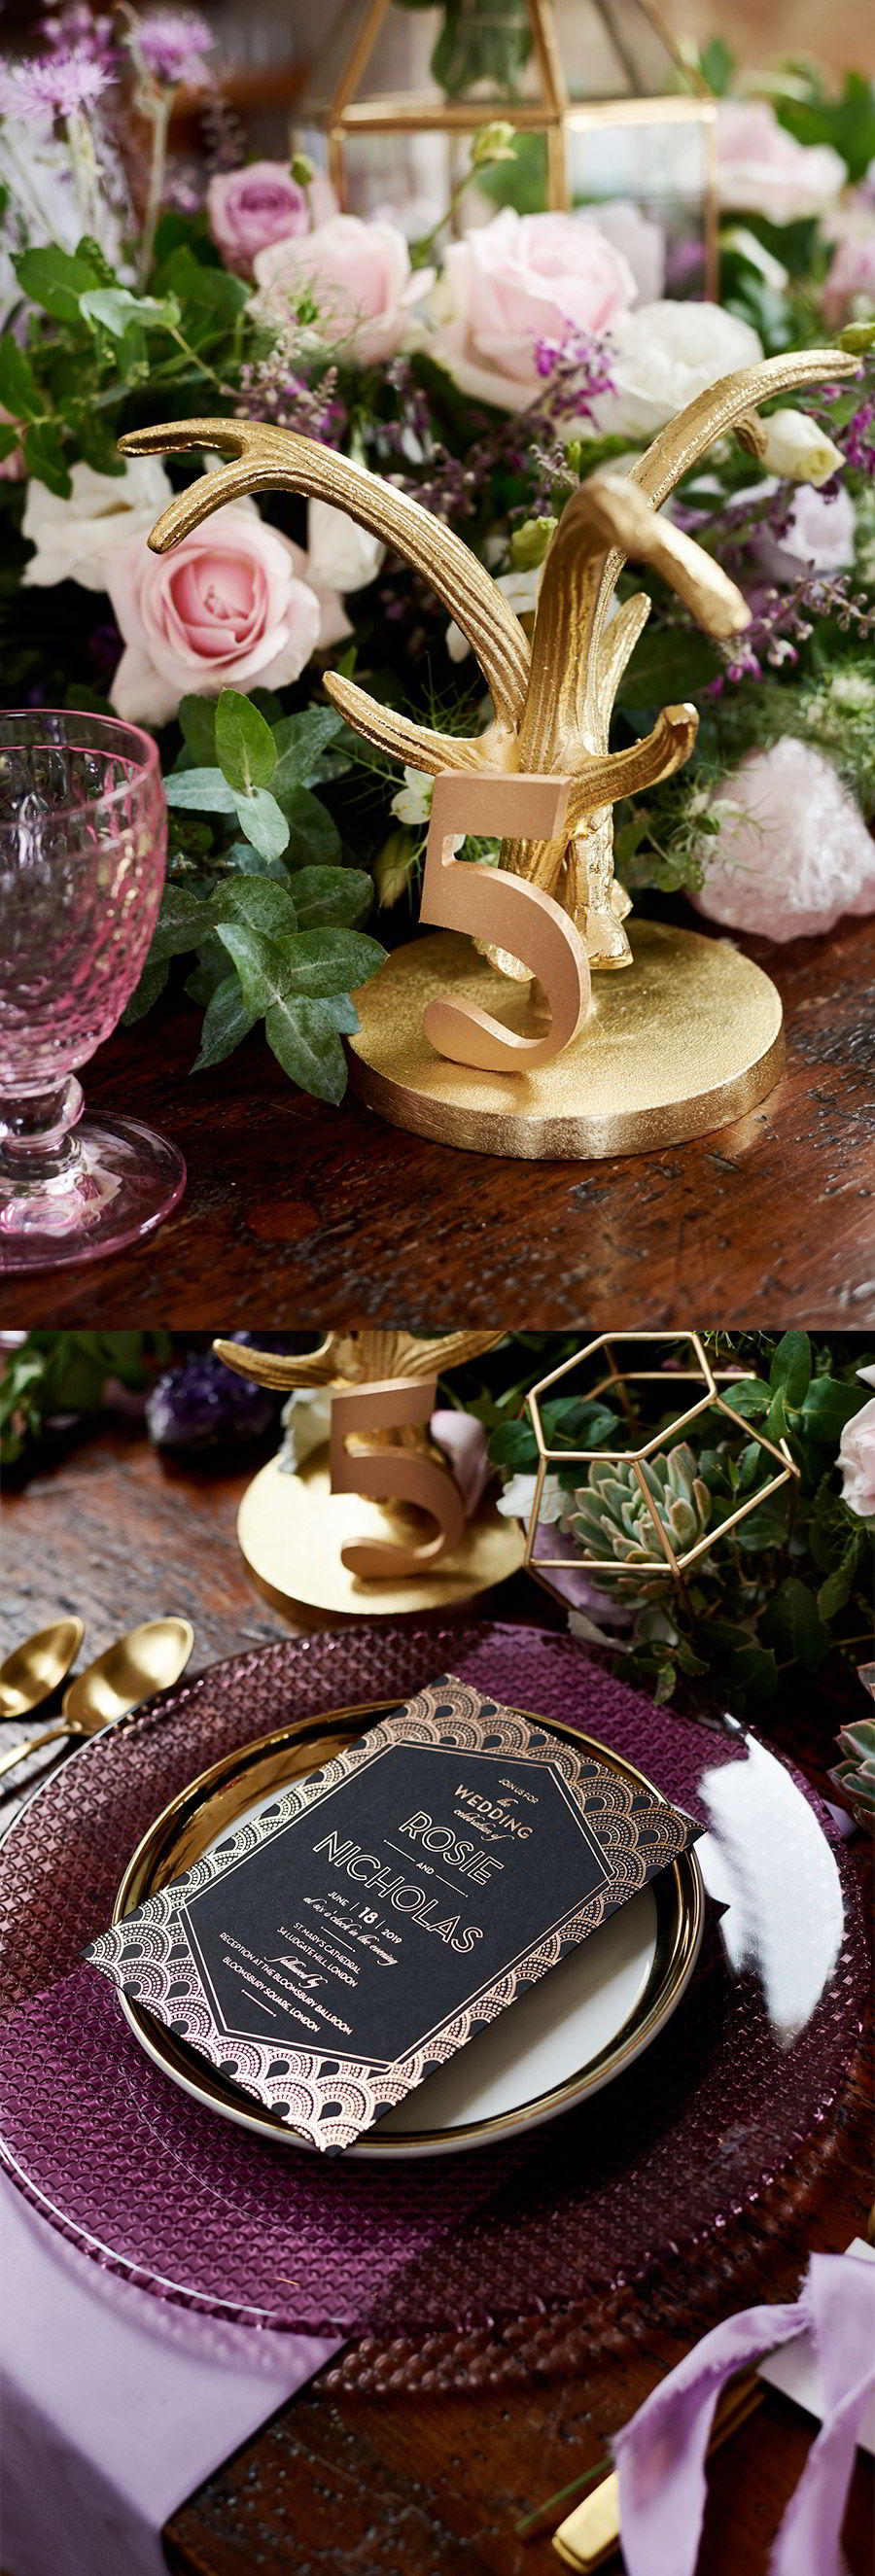 lavender field wedding photo shoot adorn invitations purple gold boho luxe inspiration dark romance metallic foil